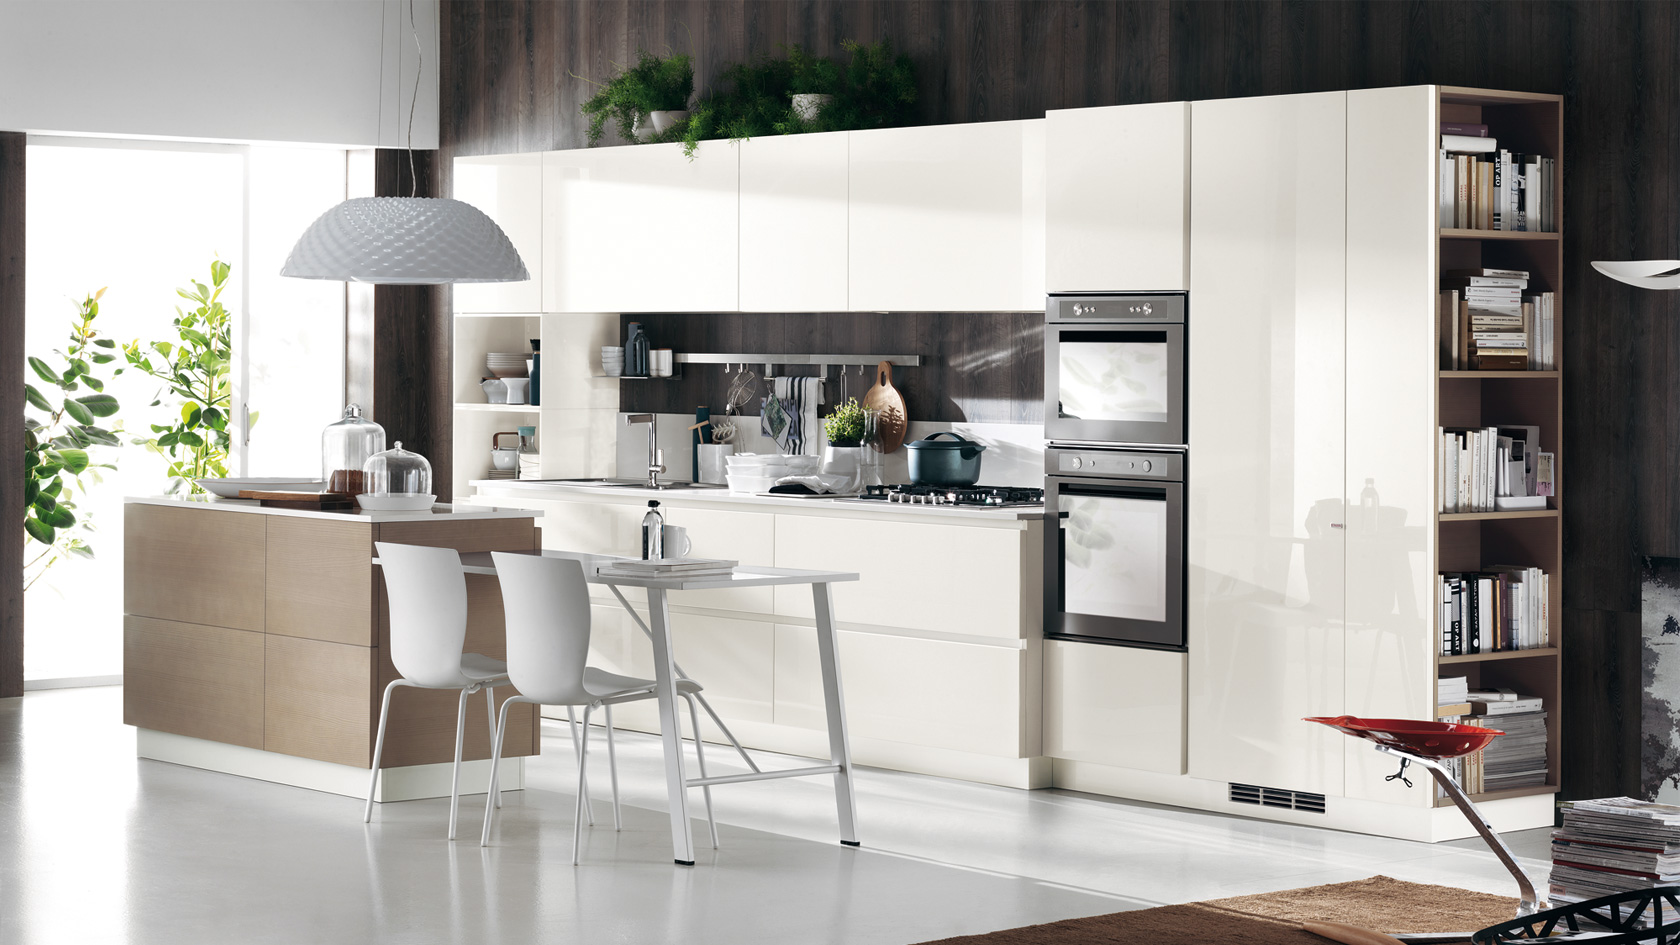 Best Cucine Scavolini 2014 Contemporary - Ideas & Design 2017 ...